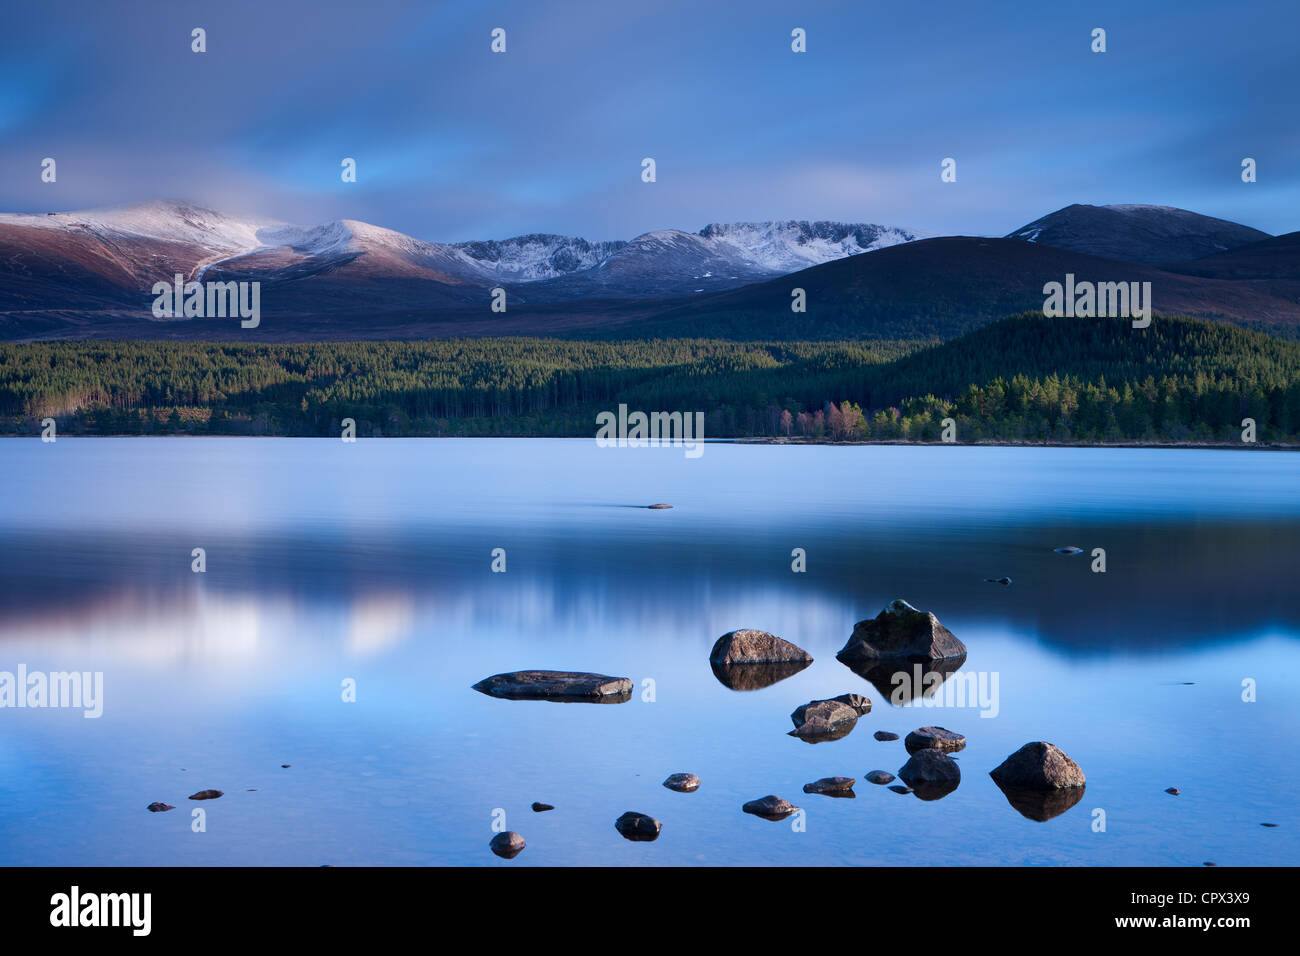 Loch Morlich & the Cairngorm Mountains, Cairngorms National Park, Badenoch and Strathspey, Scotland - Stock Image